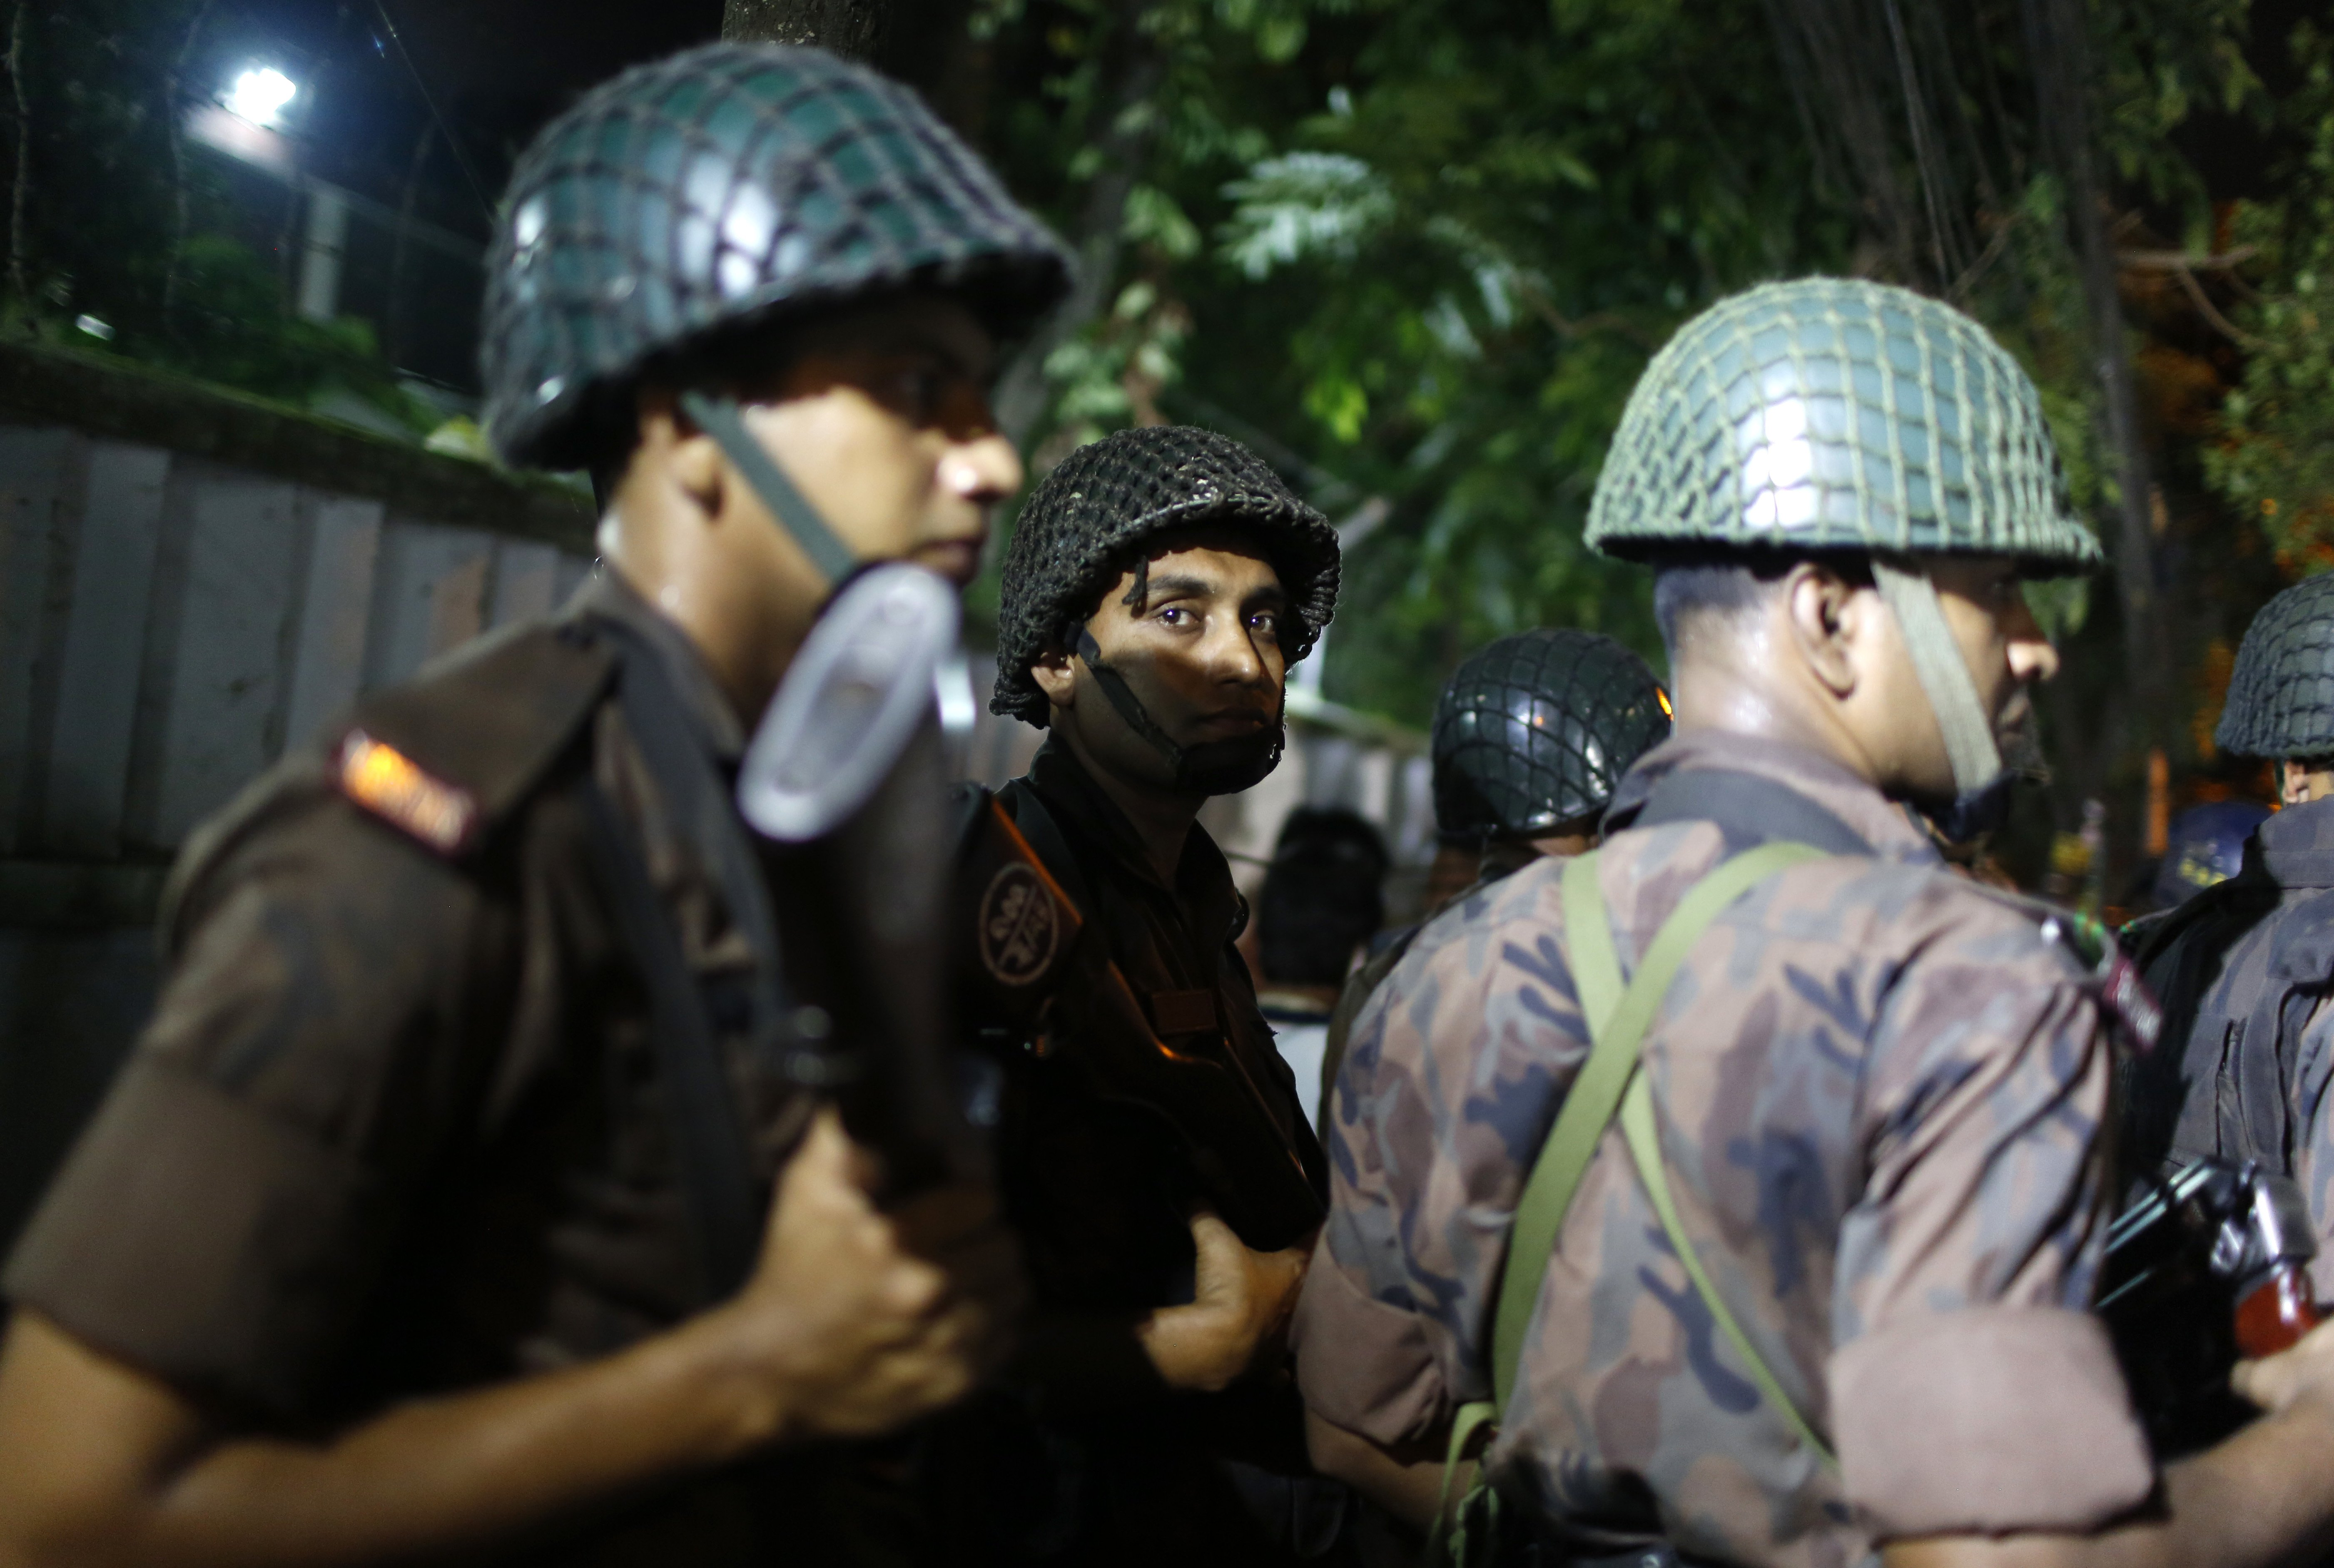 Bangladeshi security personnel stand guard near a restaurant that has reportedly been attacked by unidentified gunmen in Dhaka, Bangladesh, on July 1, 2016